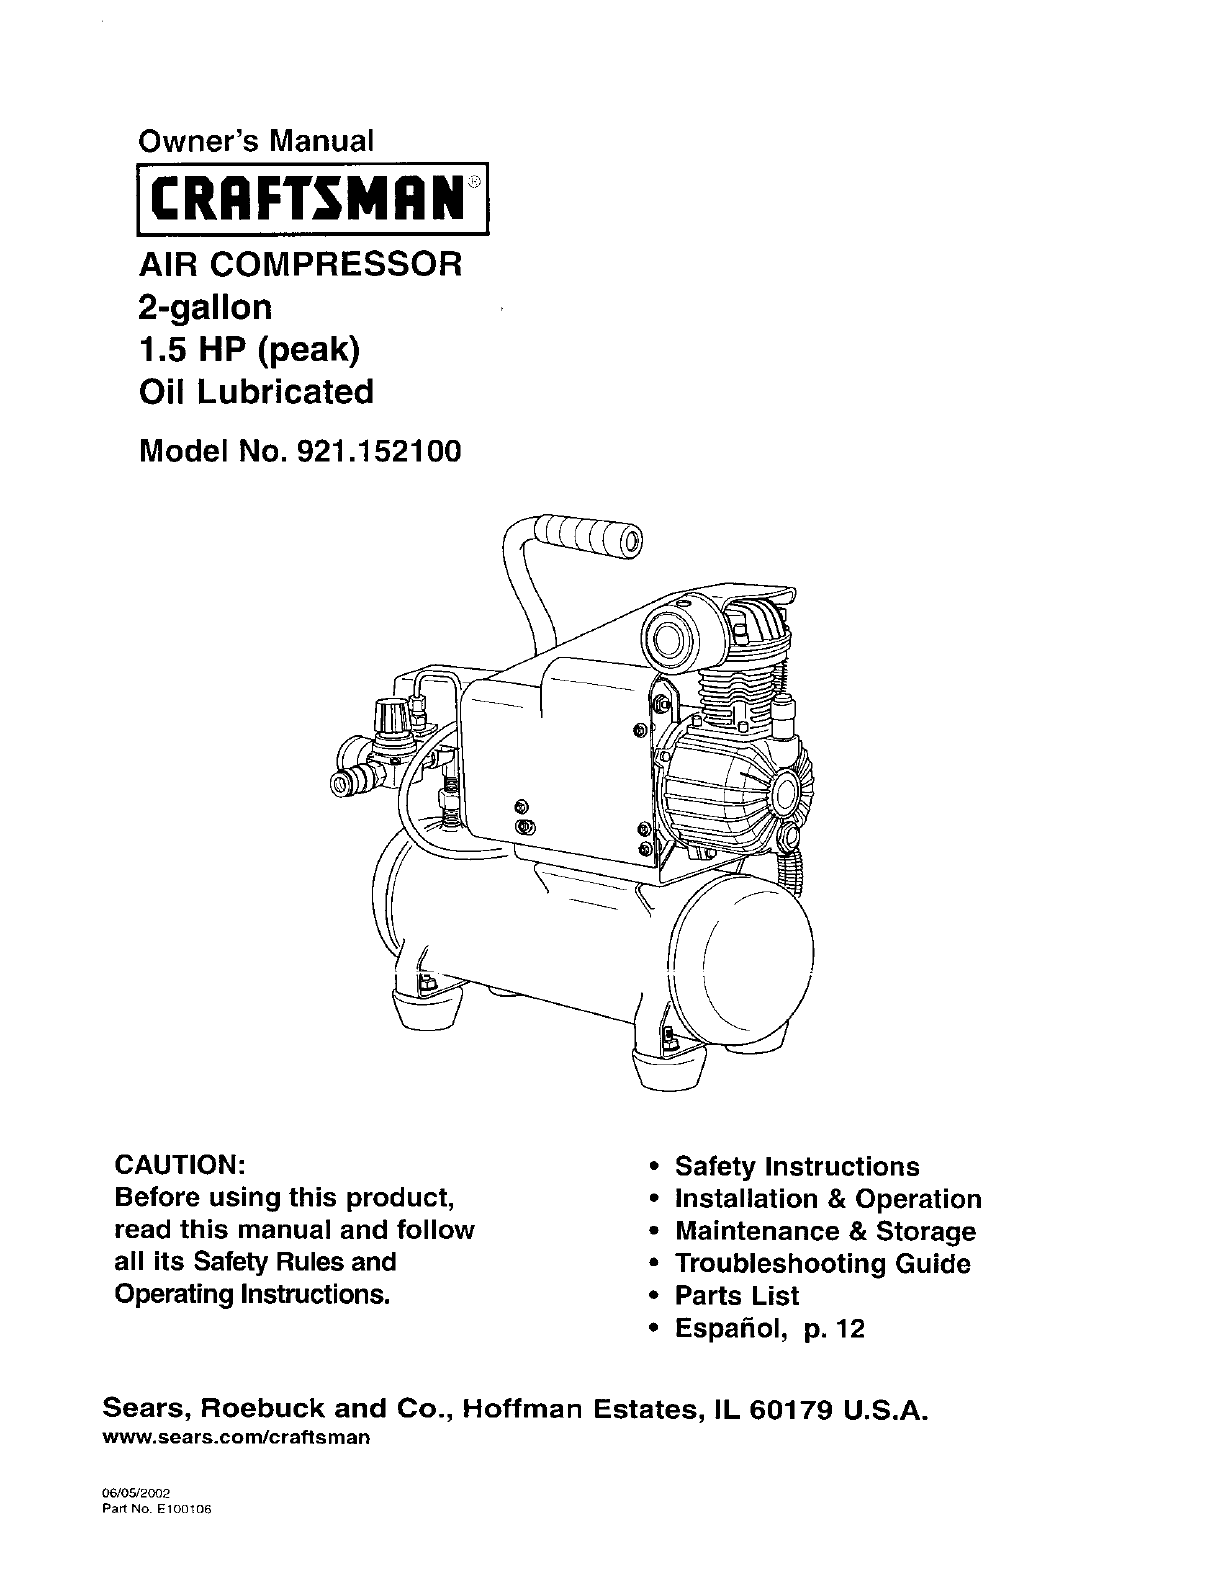 27 Craftsman Air Compressor Parts Diagram Manual Guide